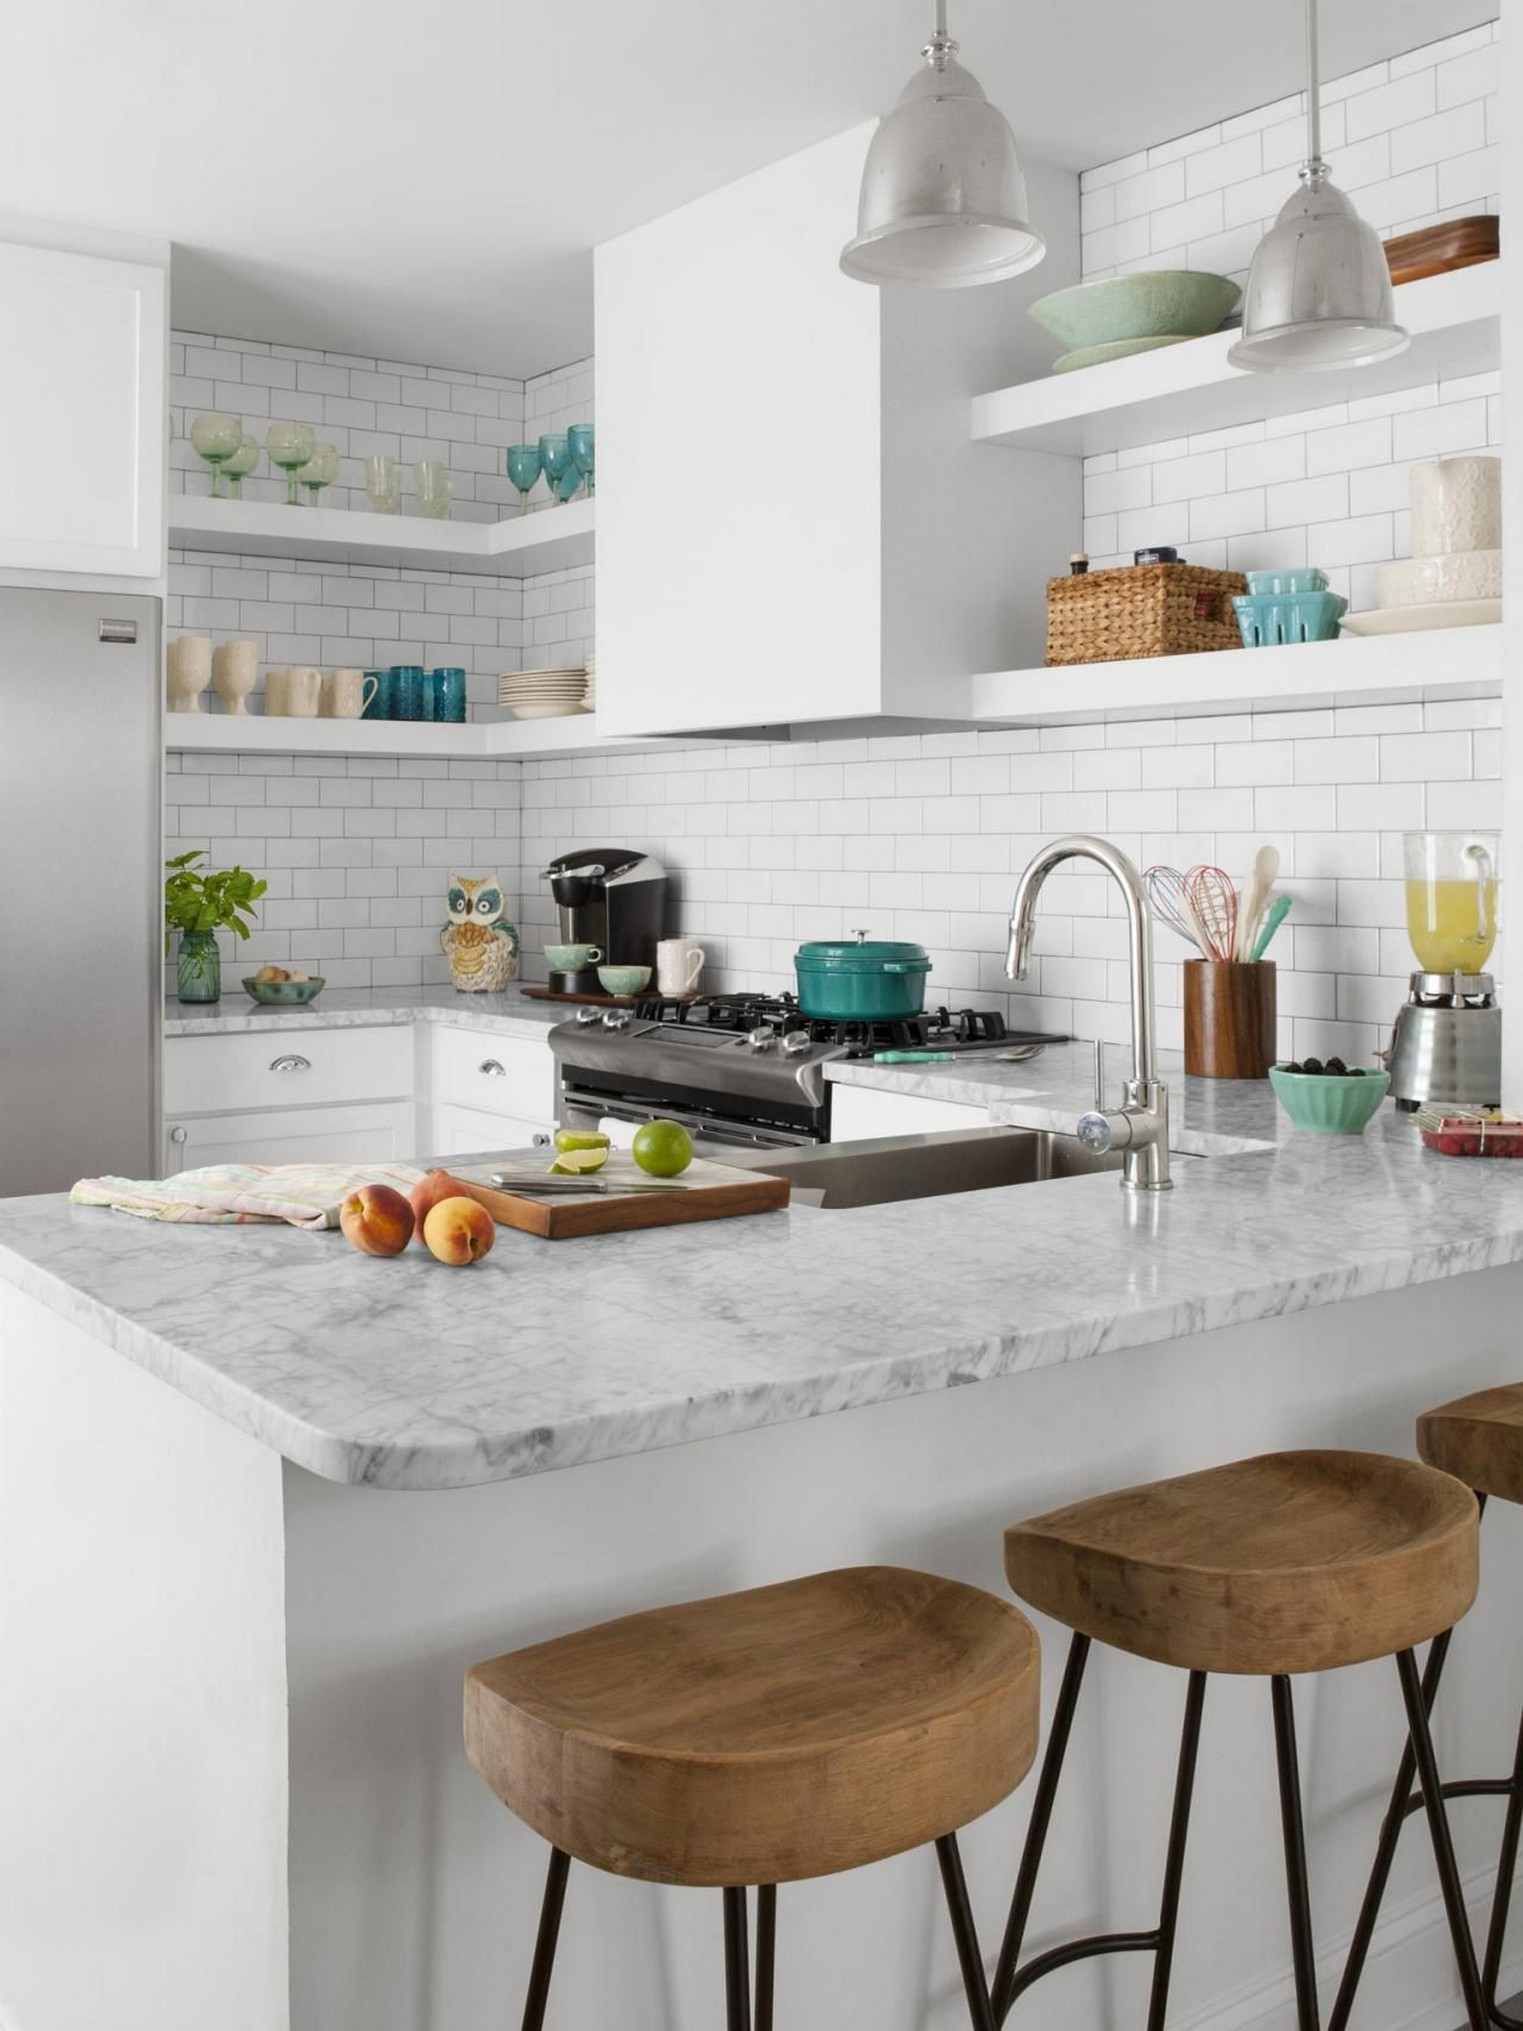 86 Some Small Kitchen Ideas To Help You Do Up Your Kitchen 75